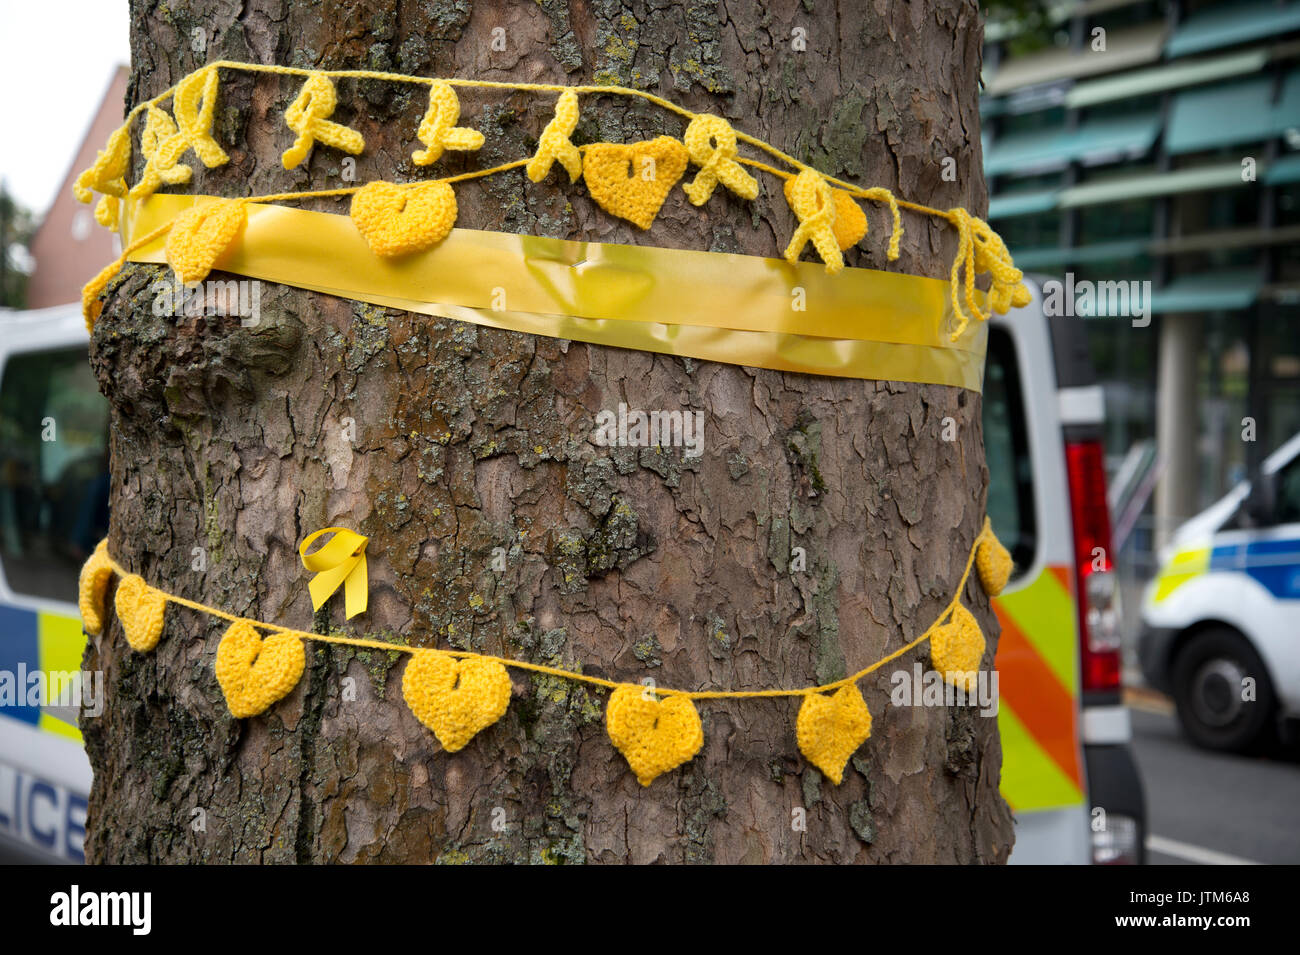 Grenfell Tower, West London. Aftermath of the tragedy. Yellow crocheted hearts to honour the missing tied around a tree near the burnt out tower. - Stock Image